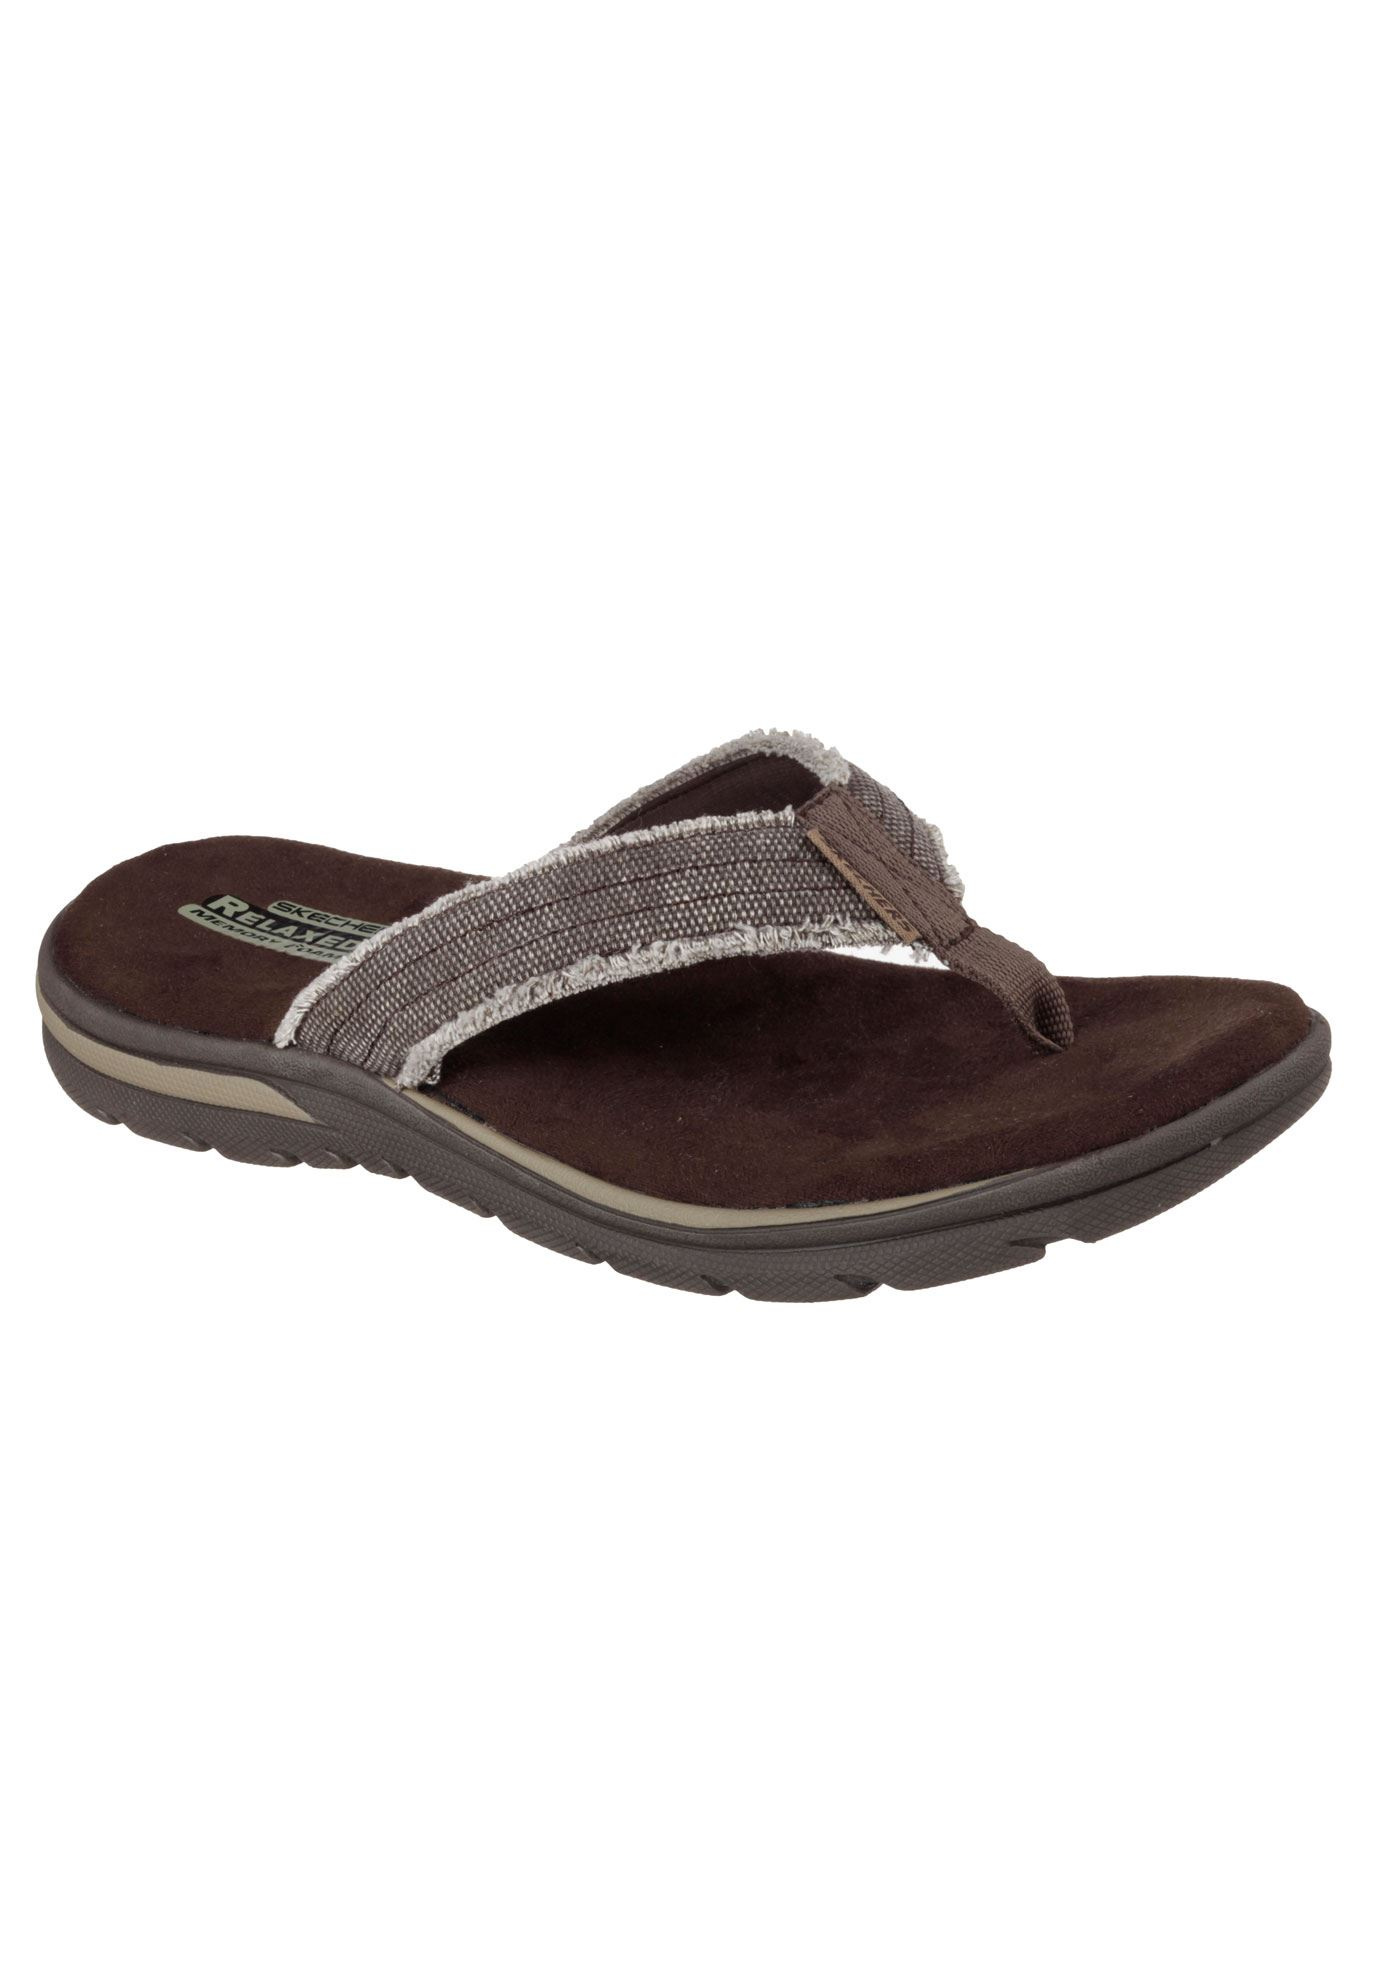 Supreme Bosnia Relaxed Fit Sandal by Skechers®,